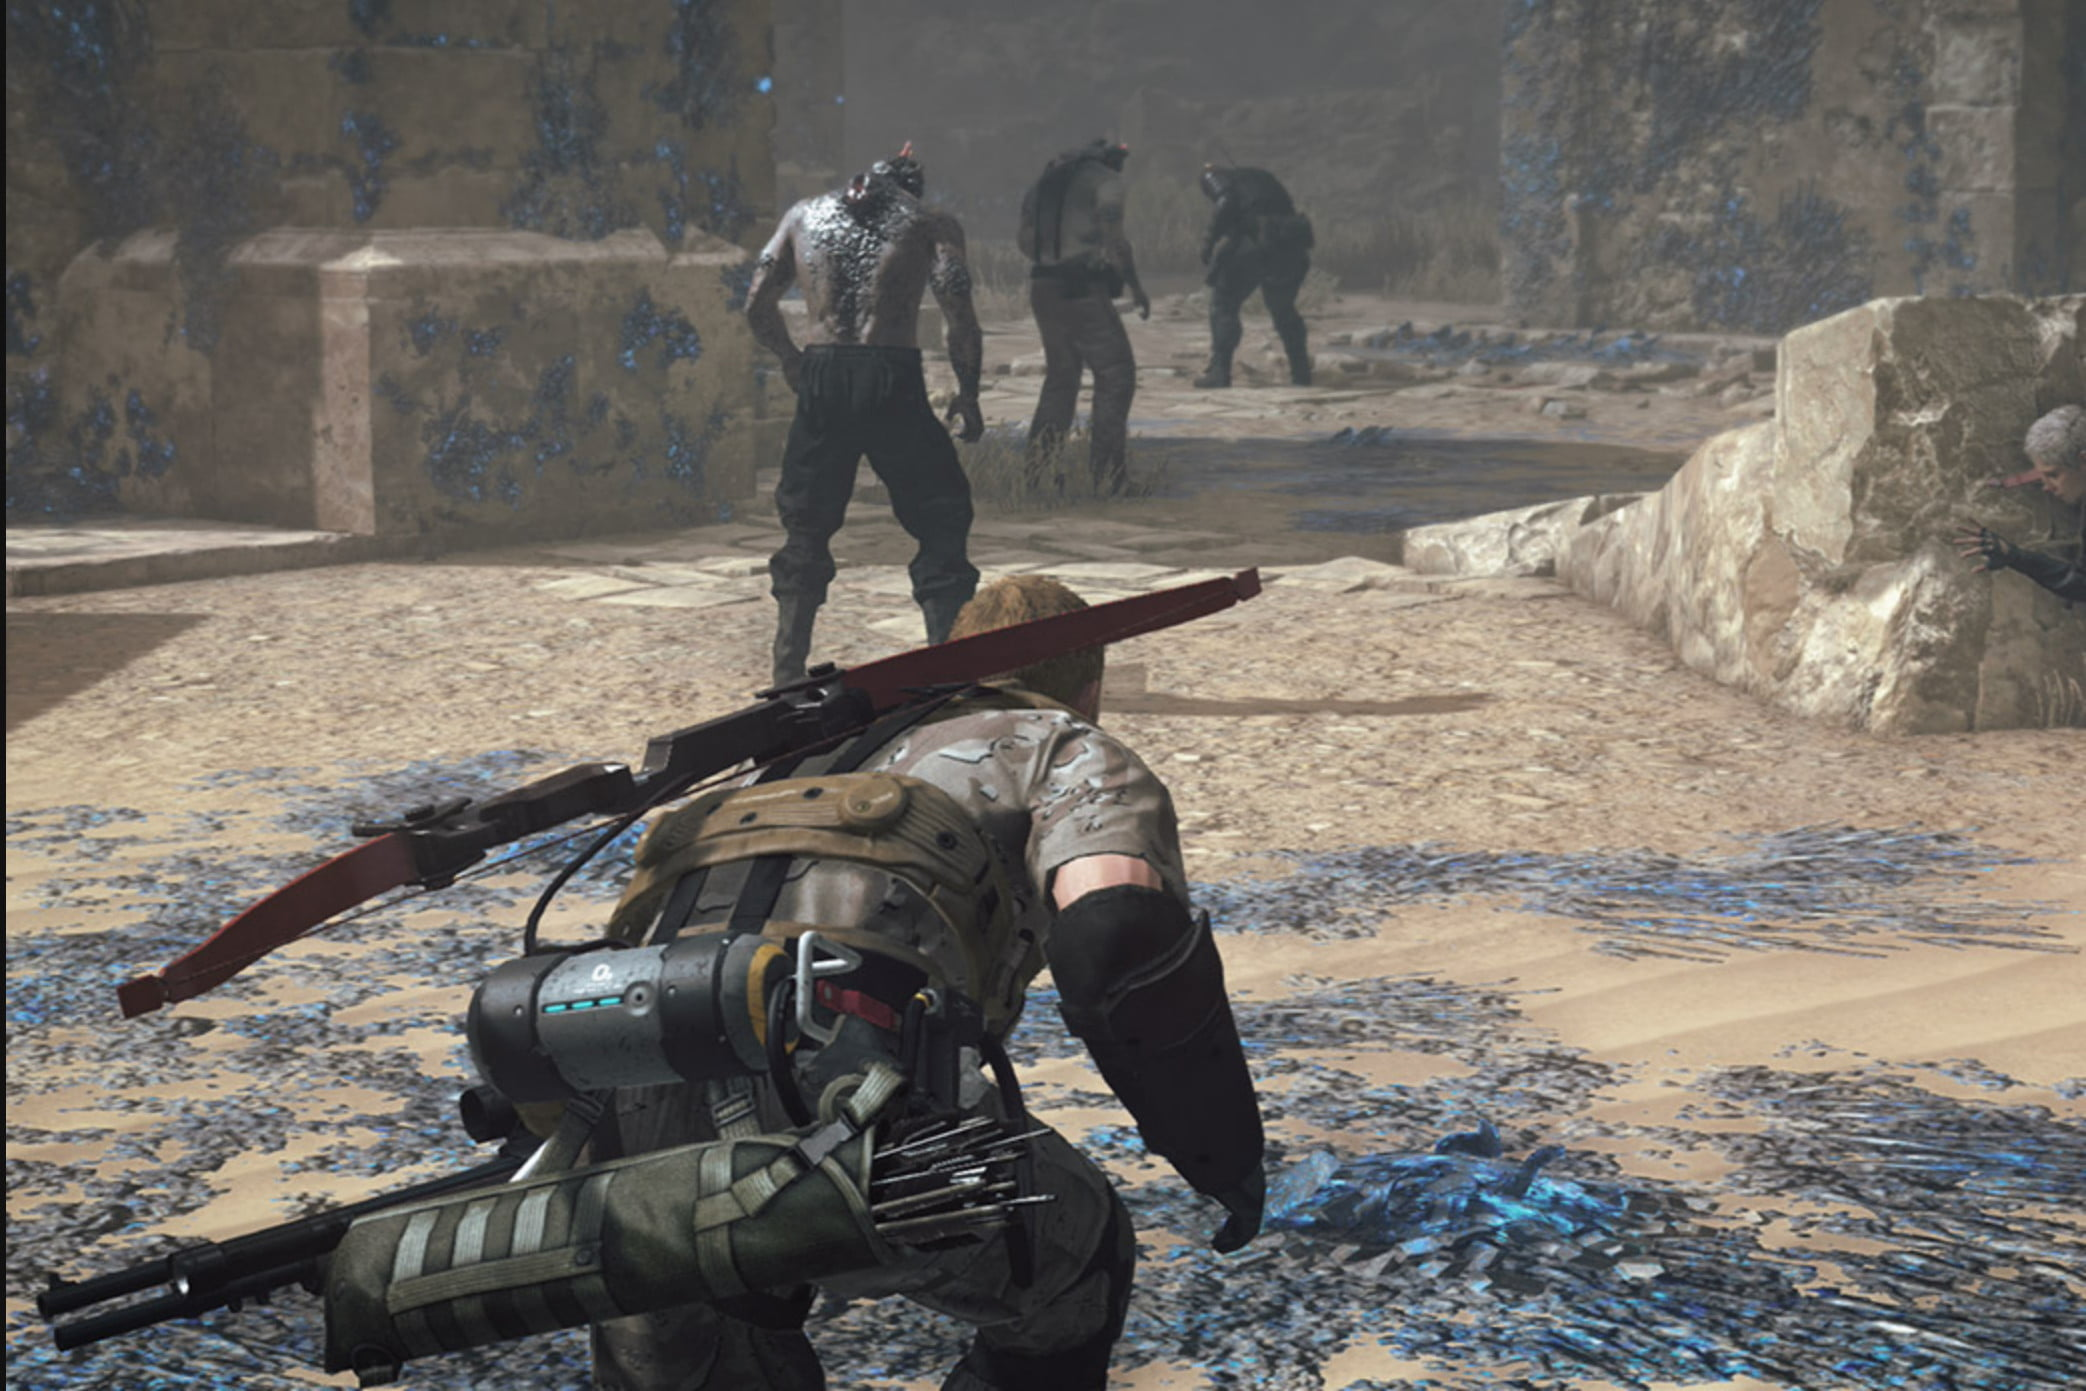 'Metal Gear Survive' is now available, and early impressions are mixed